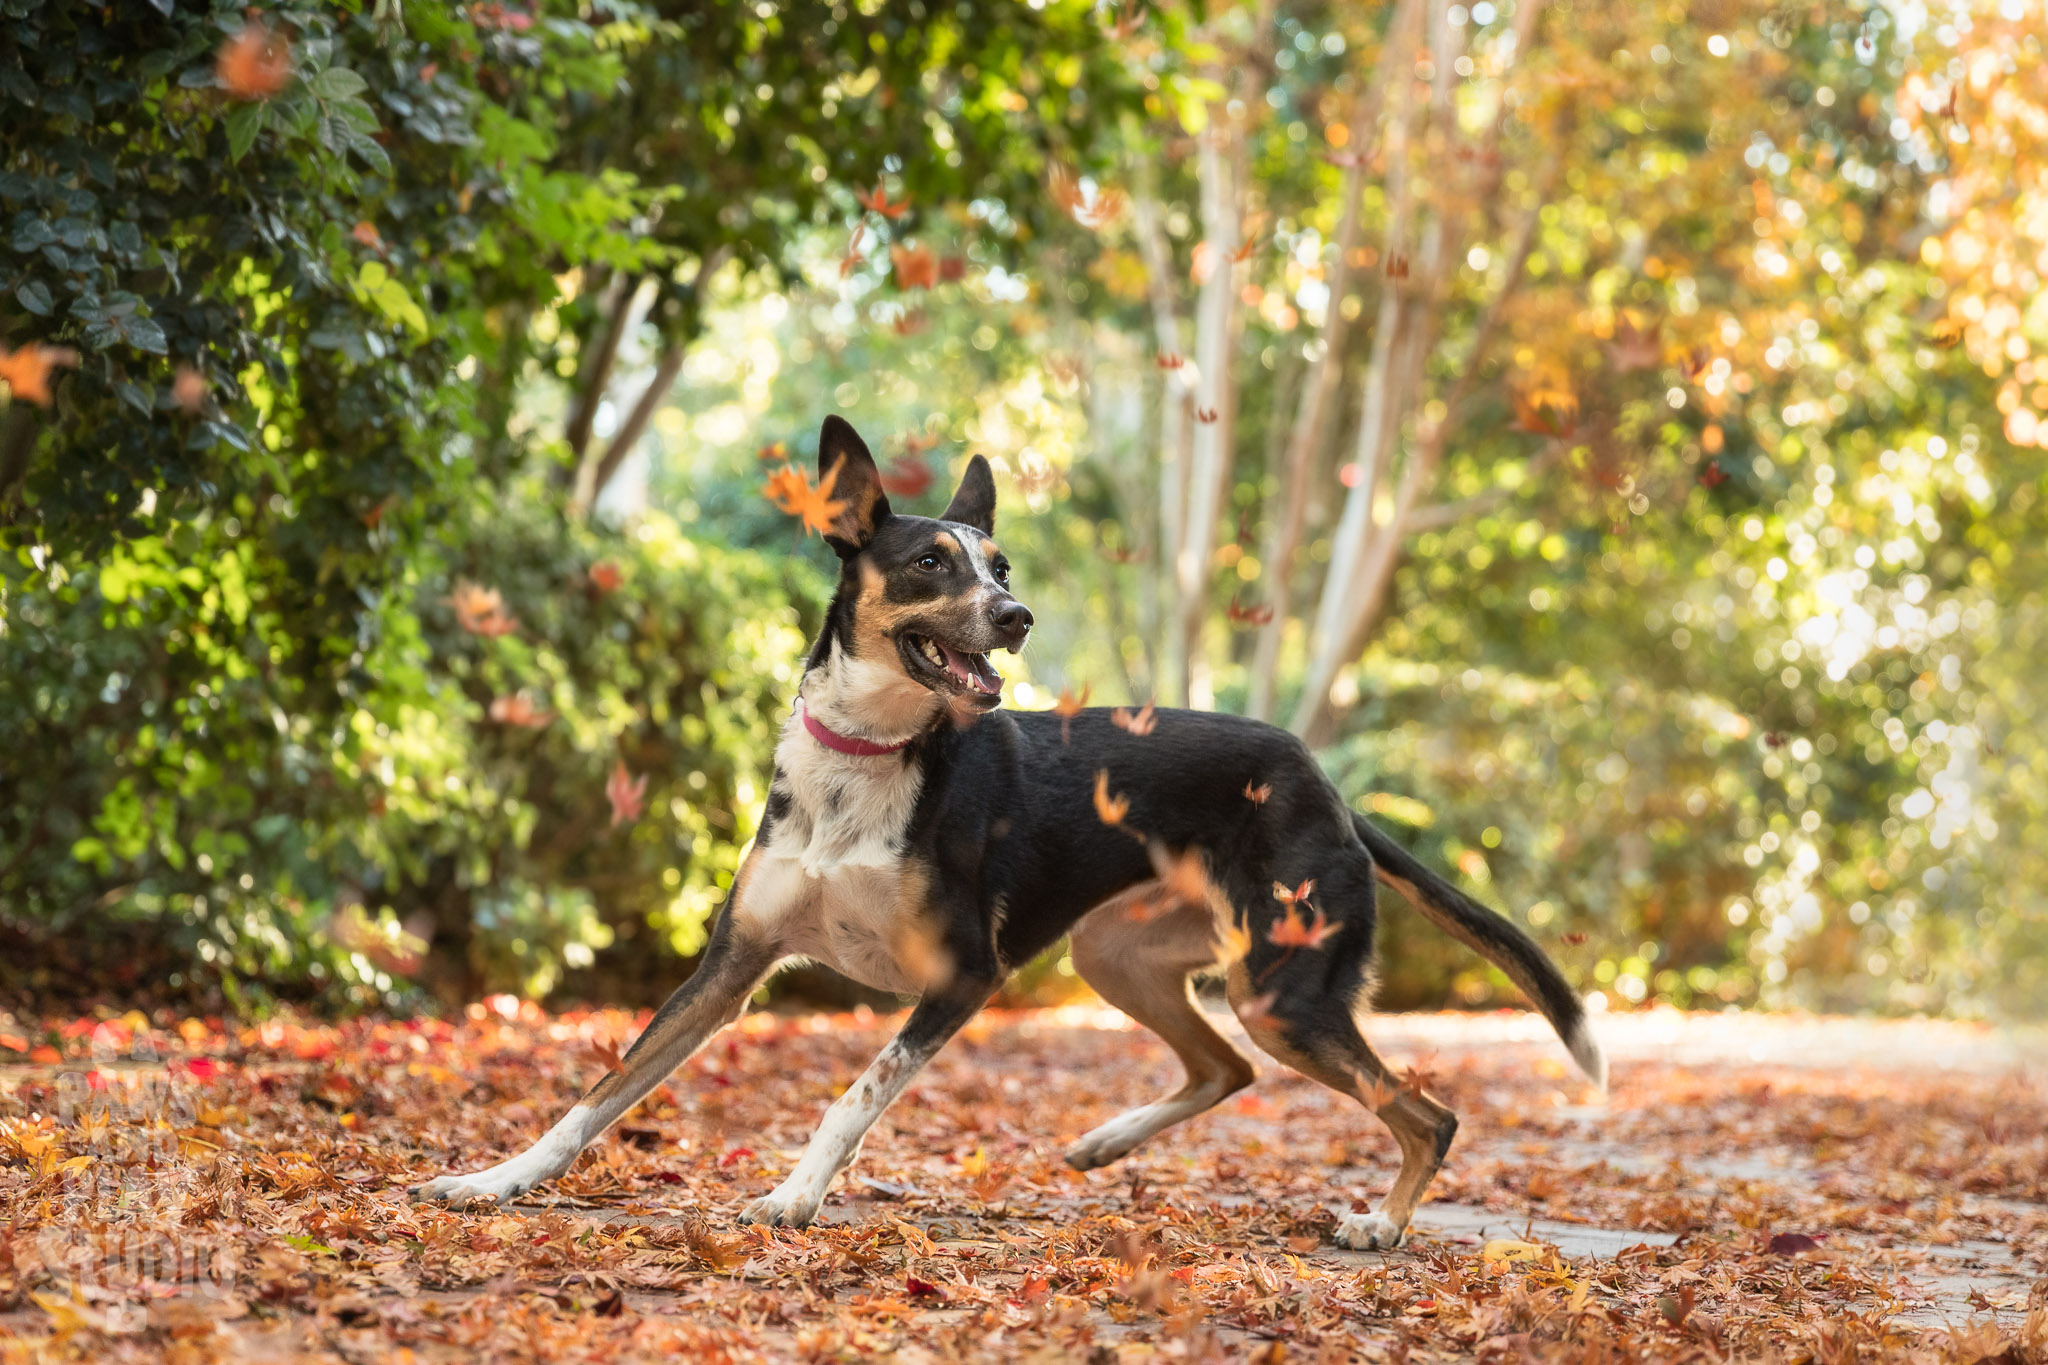 San-Francisco-Dog-Photographer-Cattle-Dog-Mix.jpg